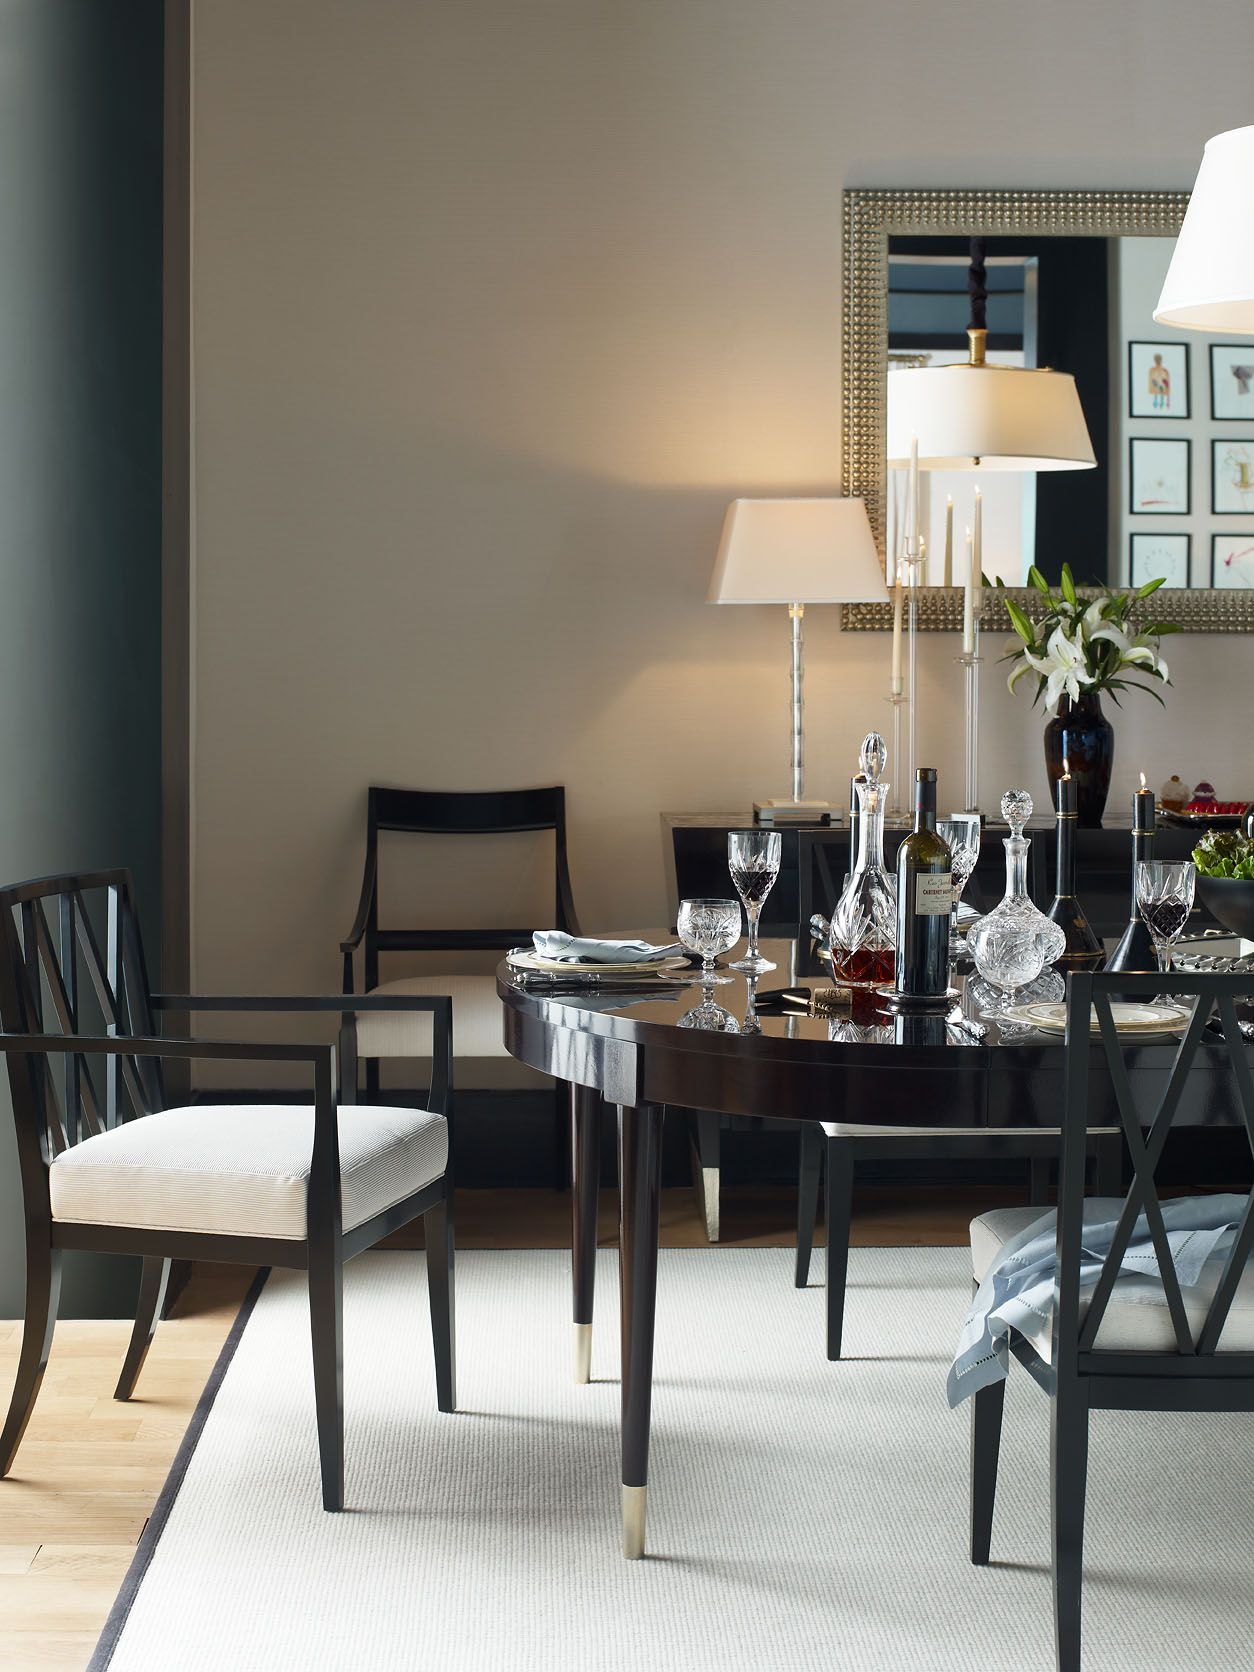 Baker Furniture Jacques Garcia Browse Products Dining Room